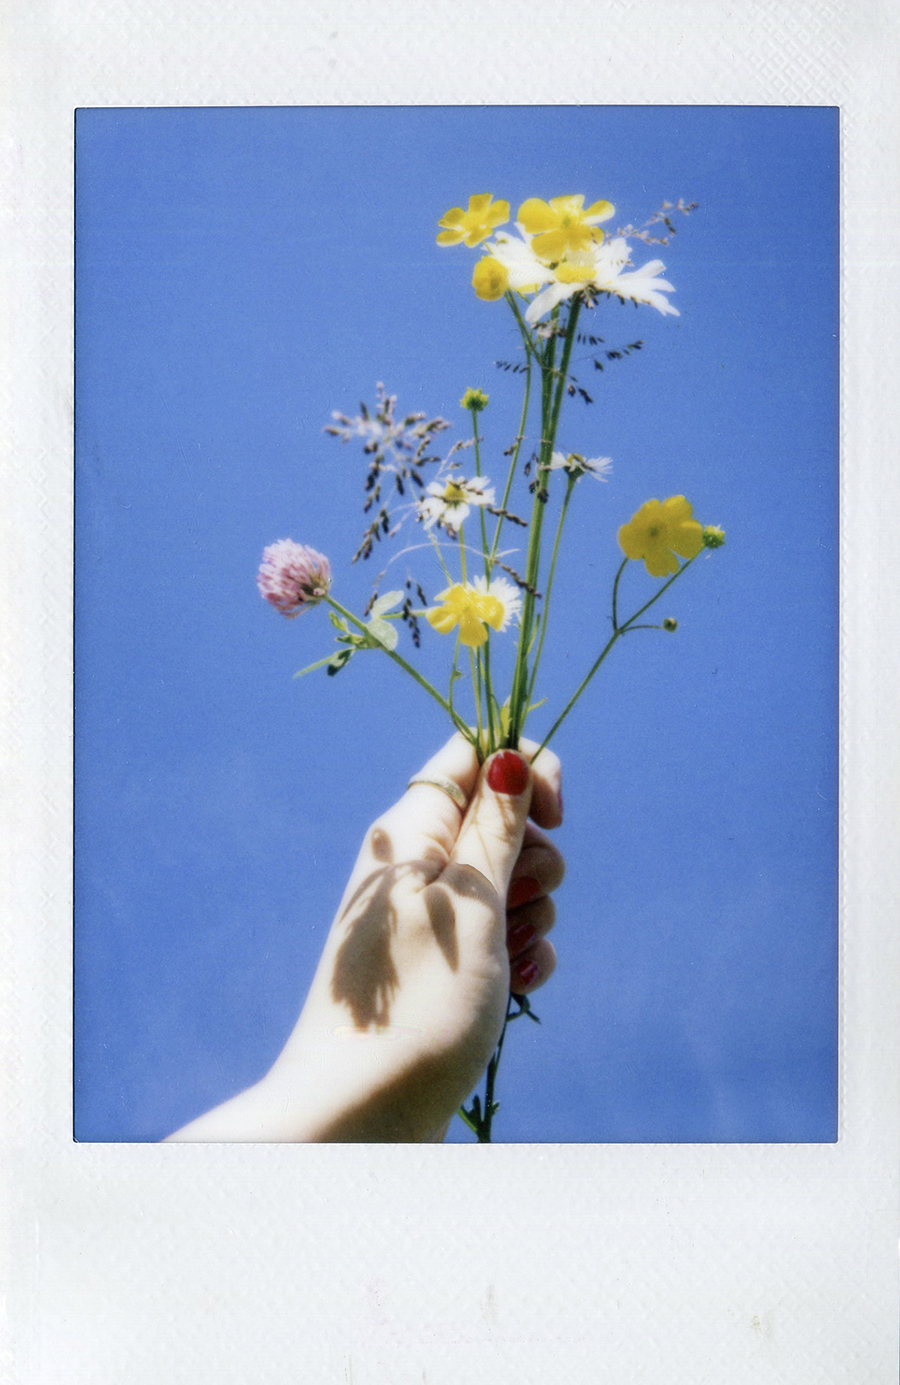 mini+instax+flowers+sky.jpg